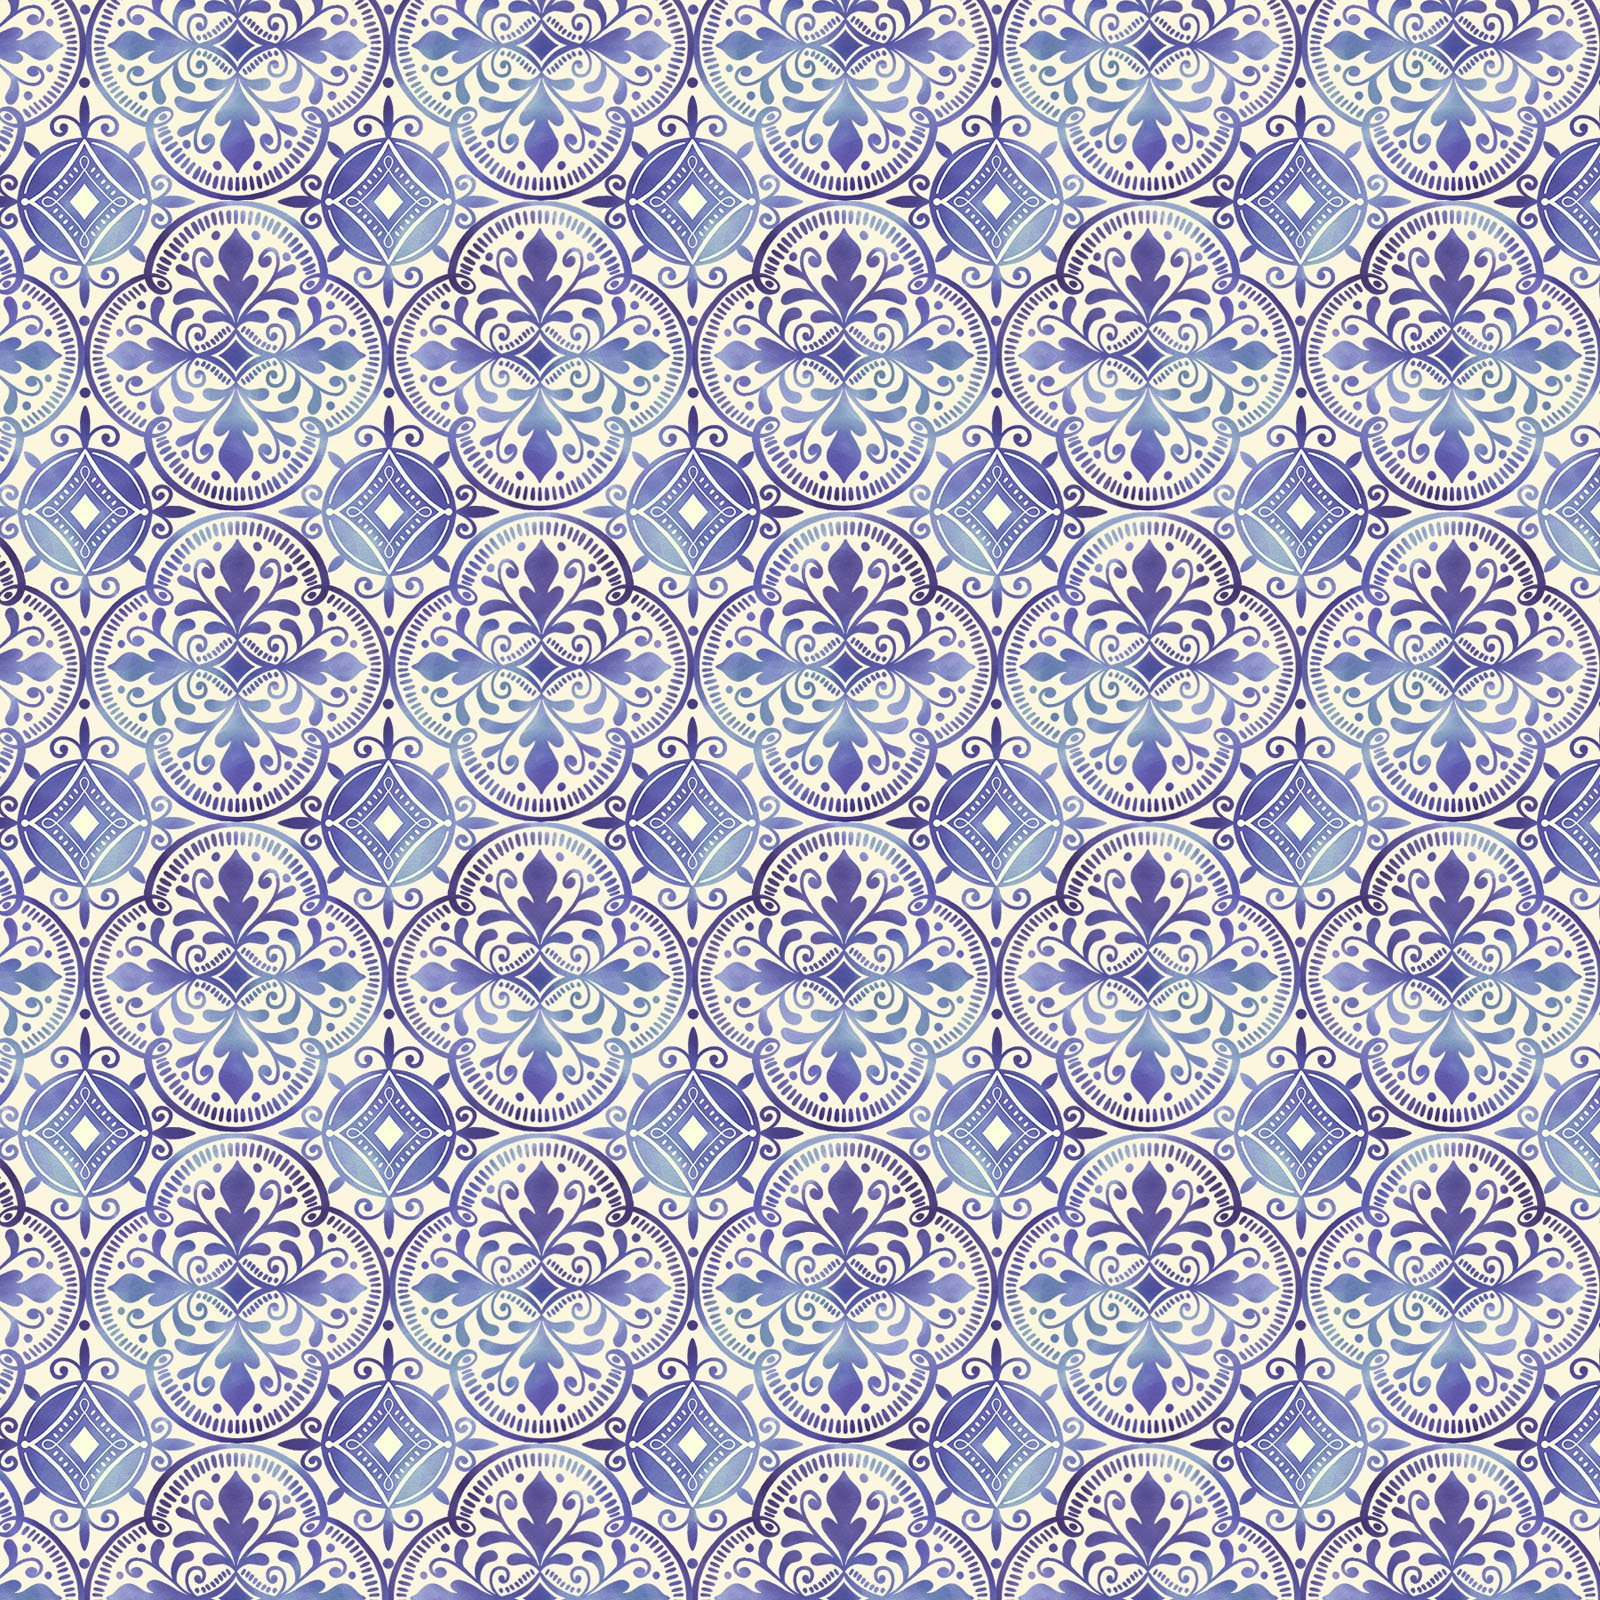 AMBR-4541 B - AMBROSIA BY NATALIE MILES TILES BLUE - ARRIVING IN NOVEMBER 2021